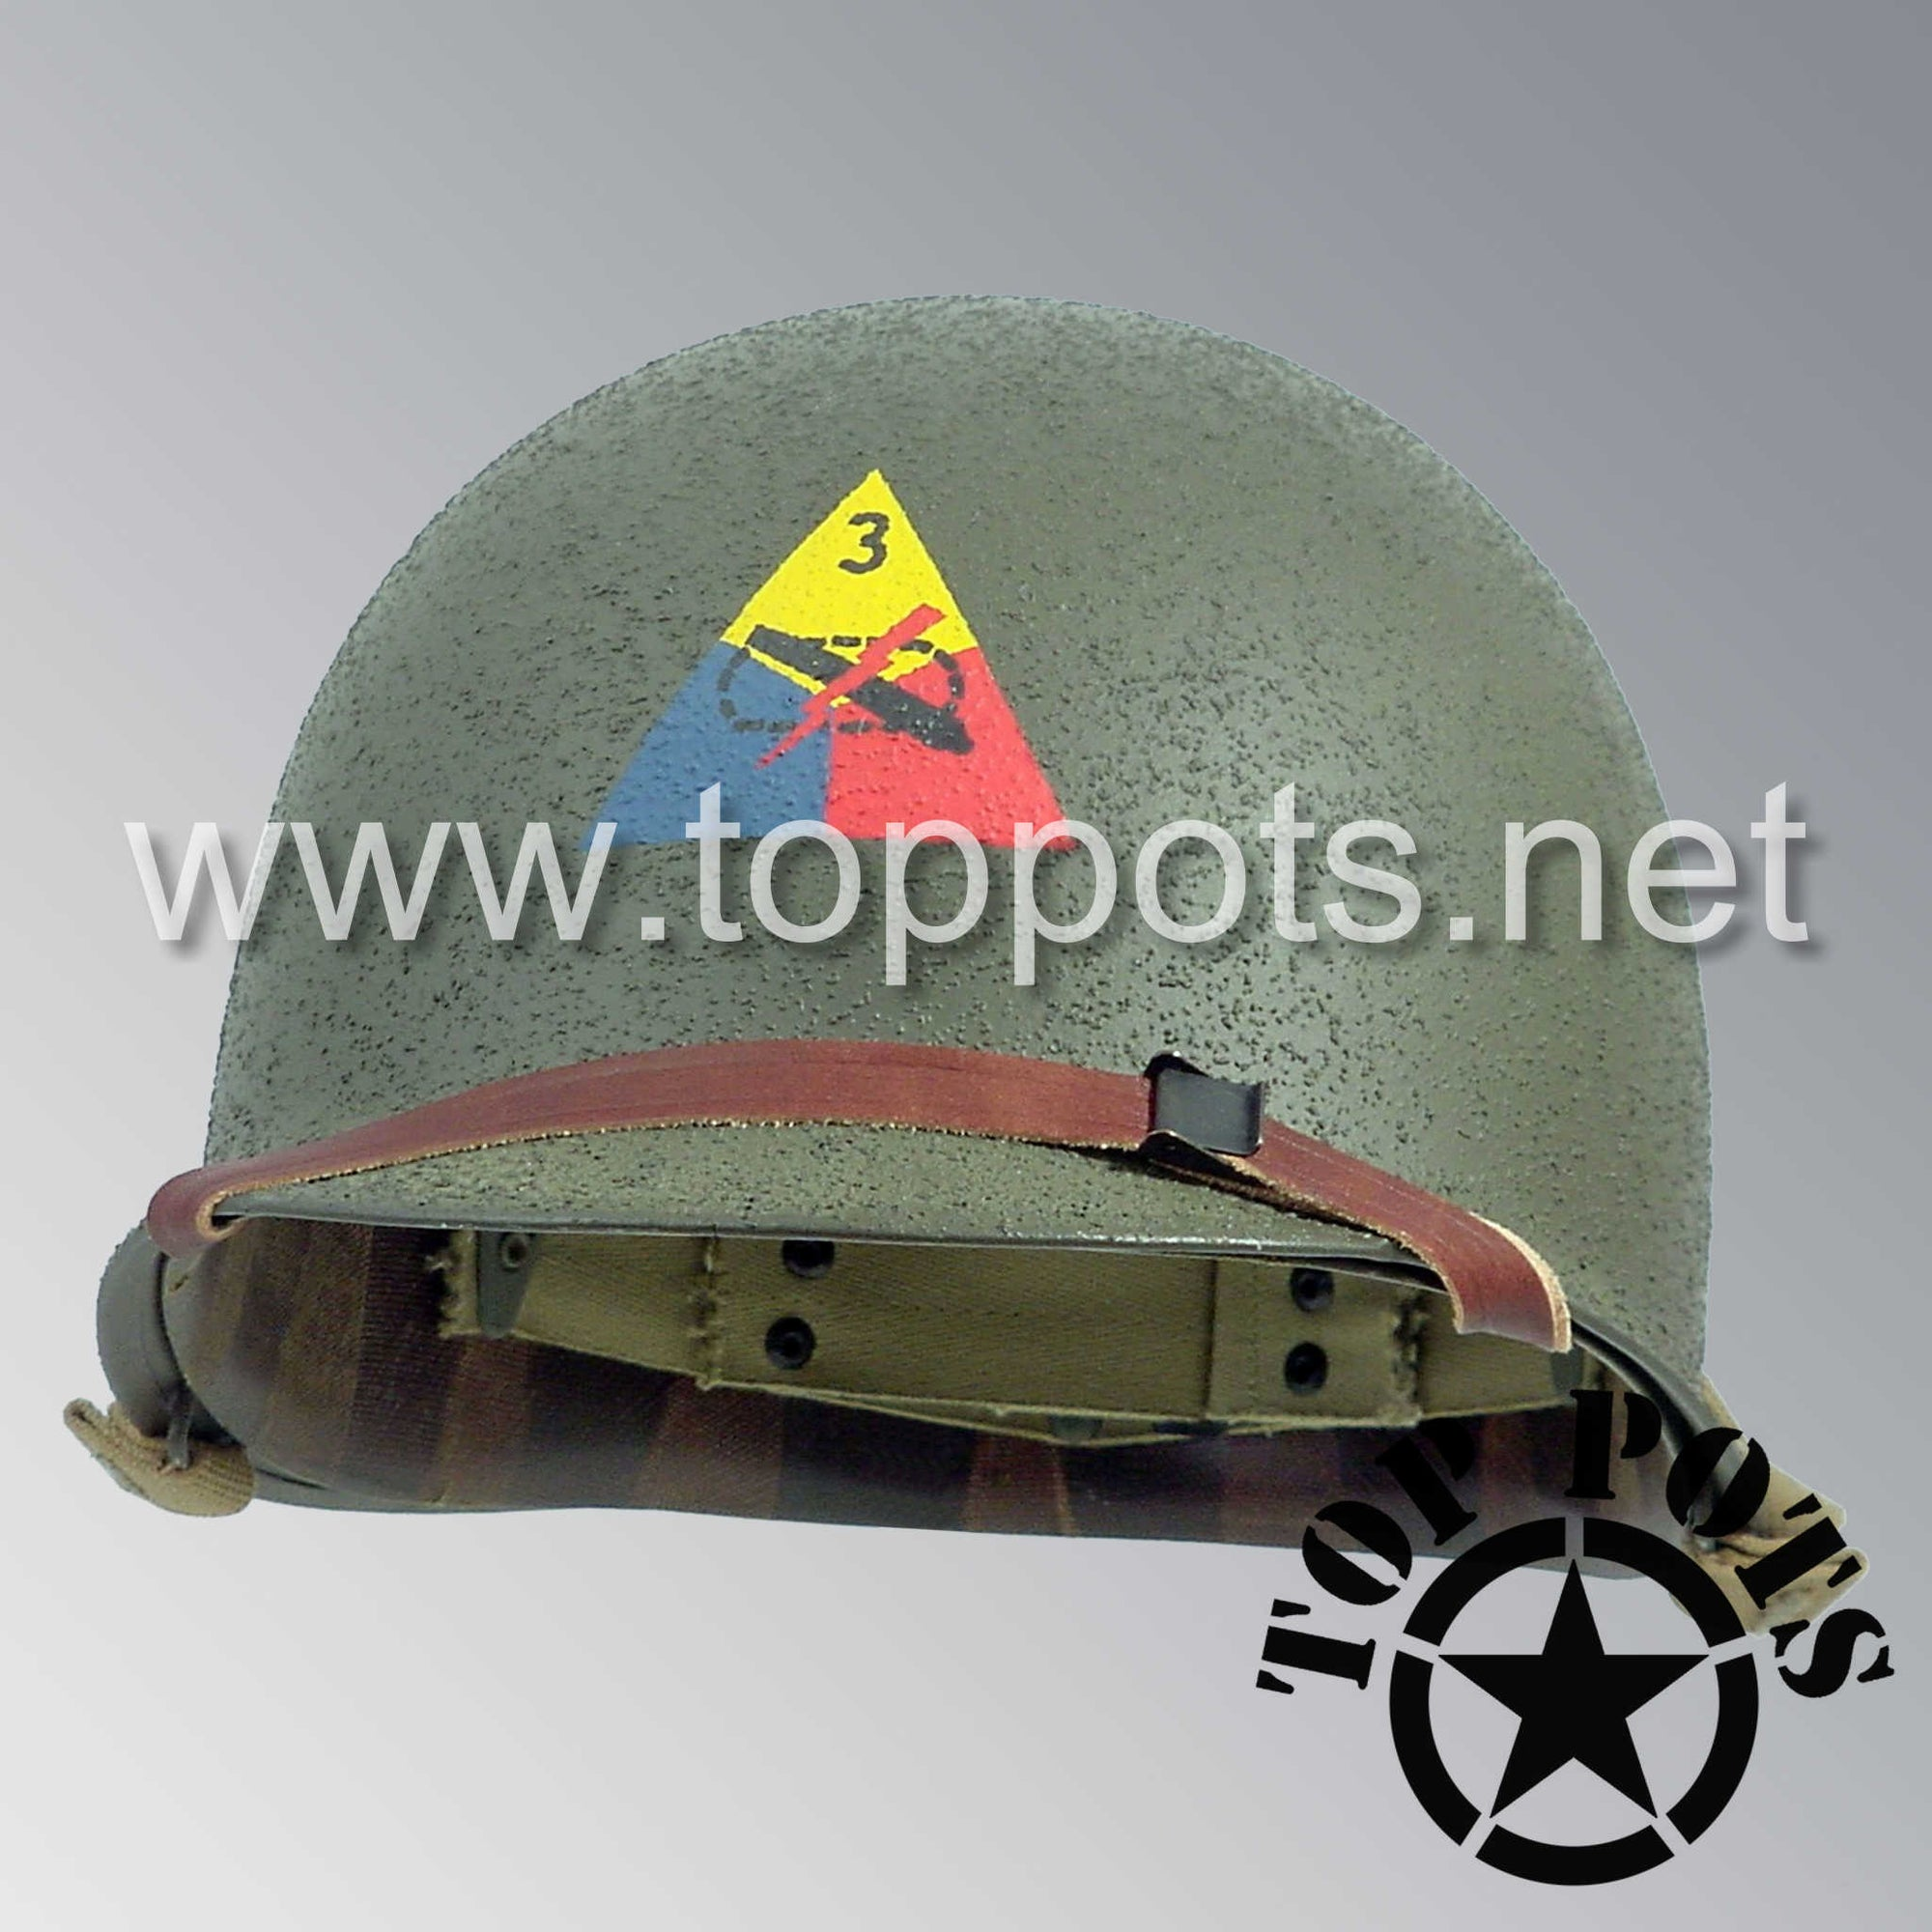 Image 1 of WWII US Army Restored Original M1 Infantry Helmet Swivel Bale Shell and Liner with 3rd Armored Division Emblem